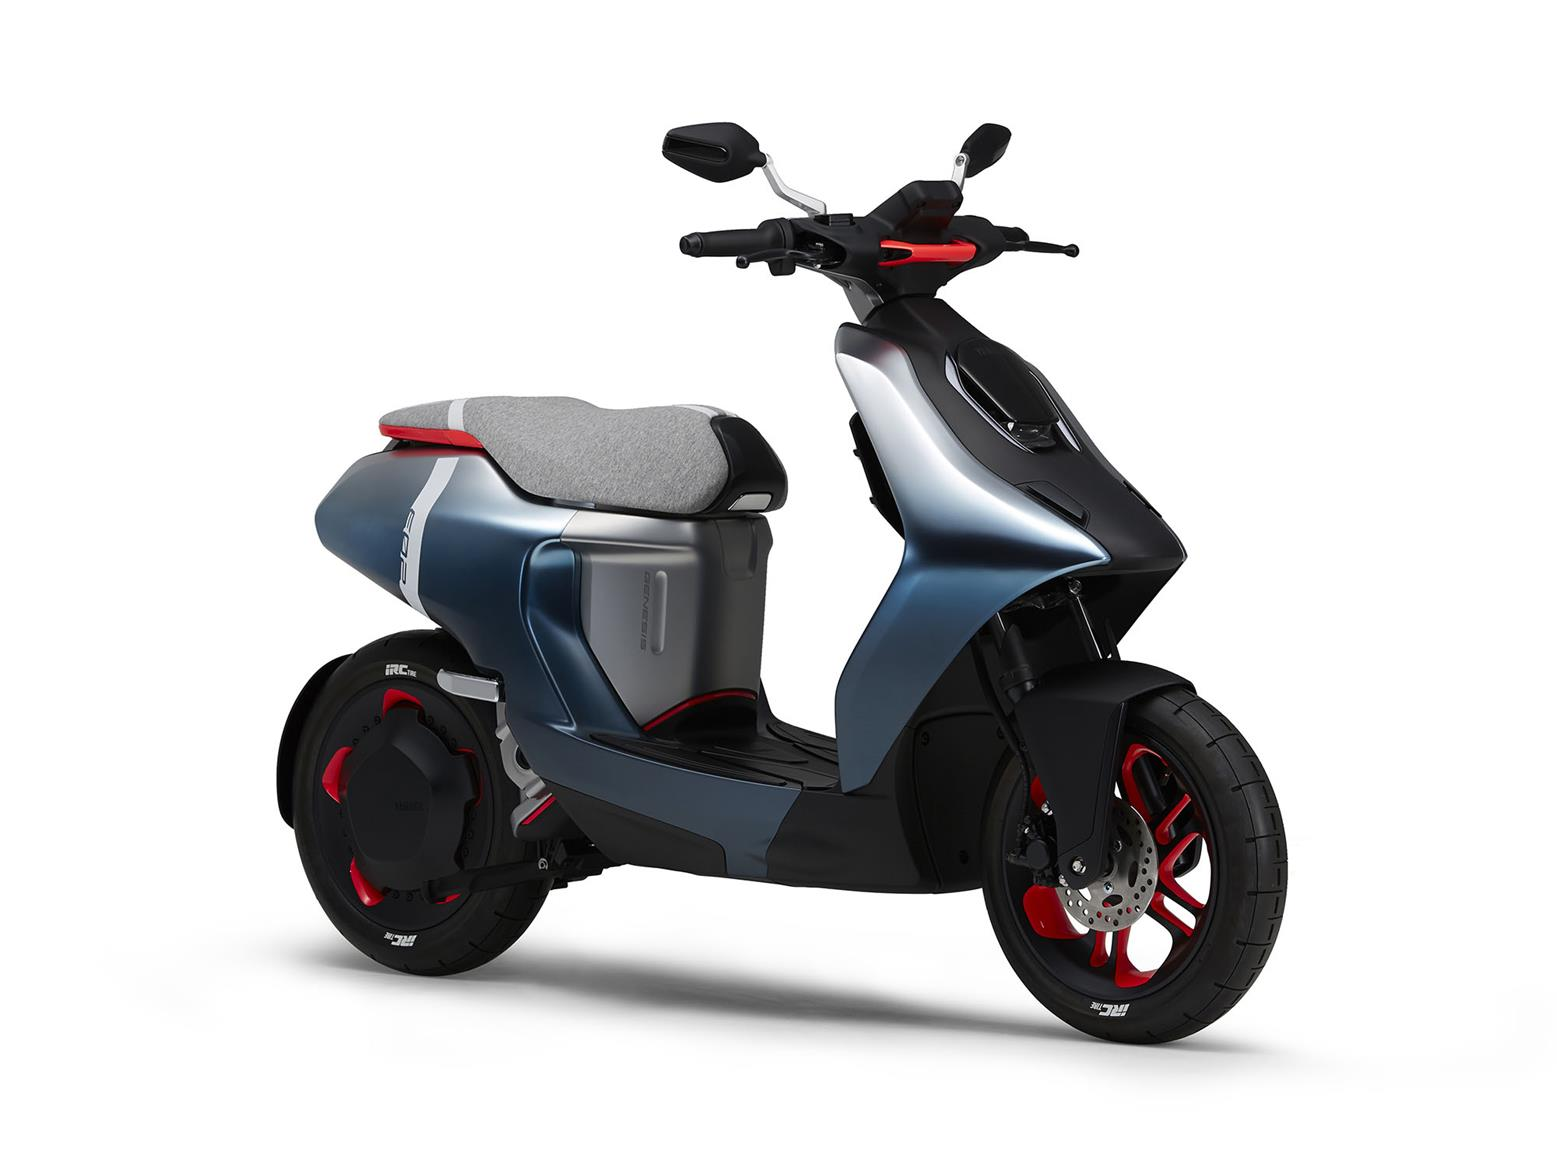 Yamaha E02 electric scooter concept